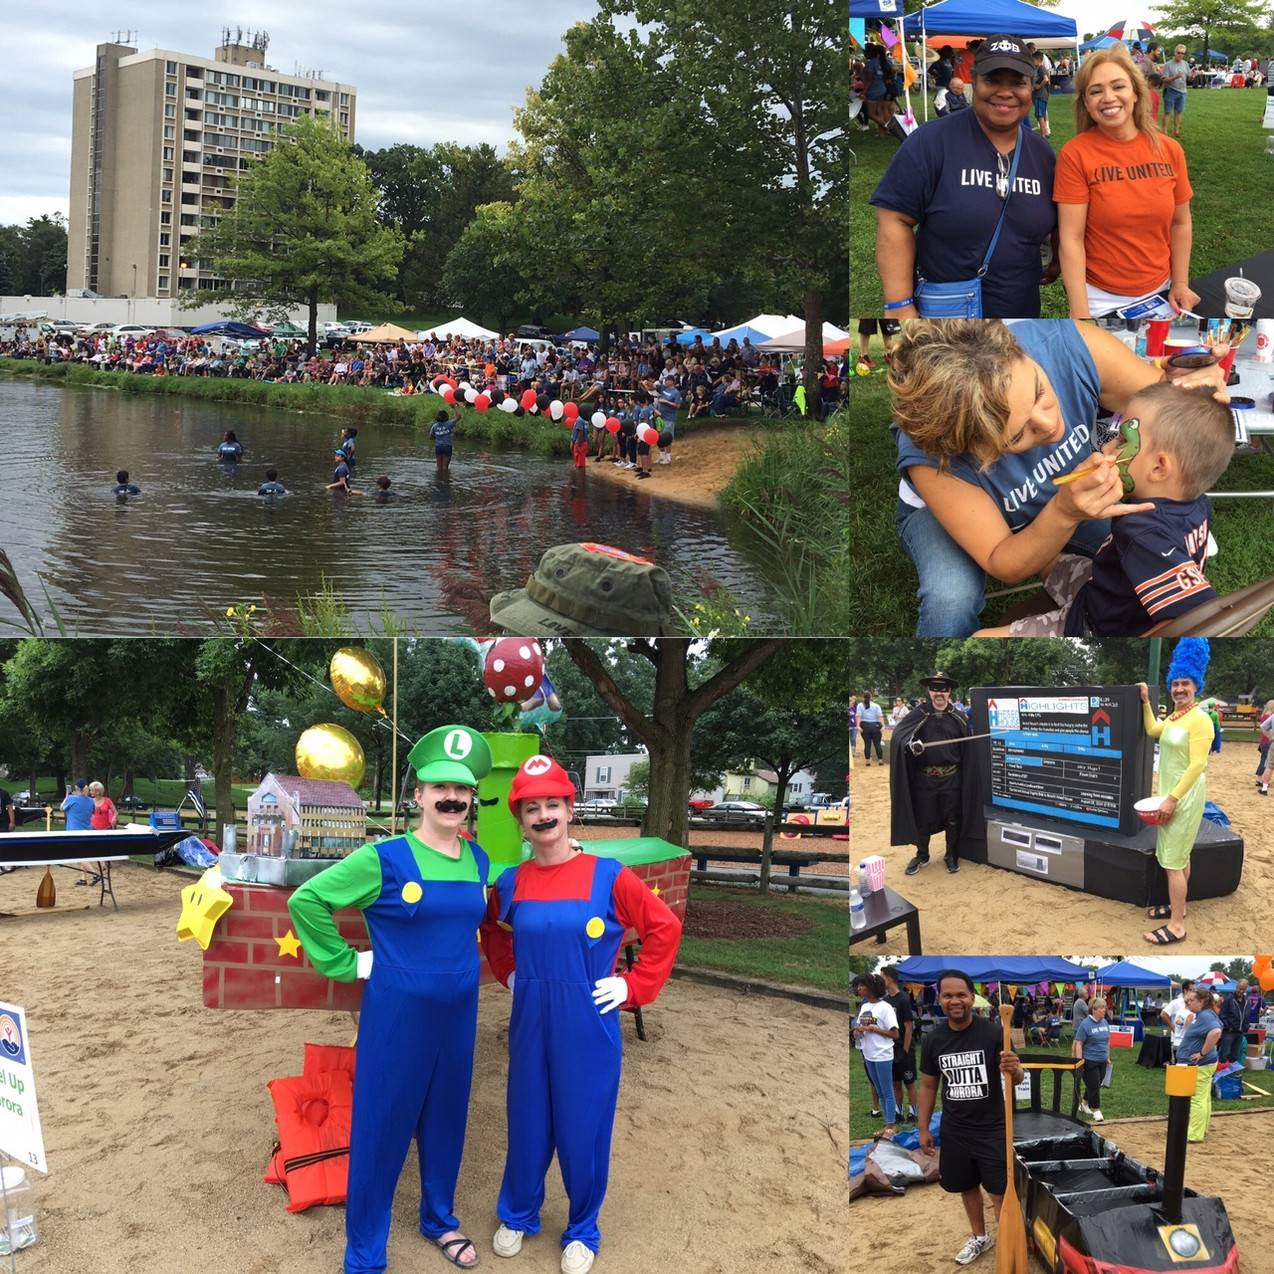 United Way Boat Race